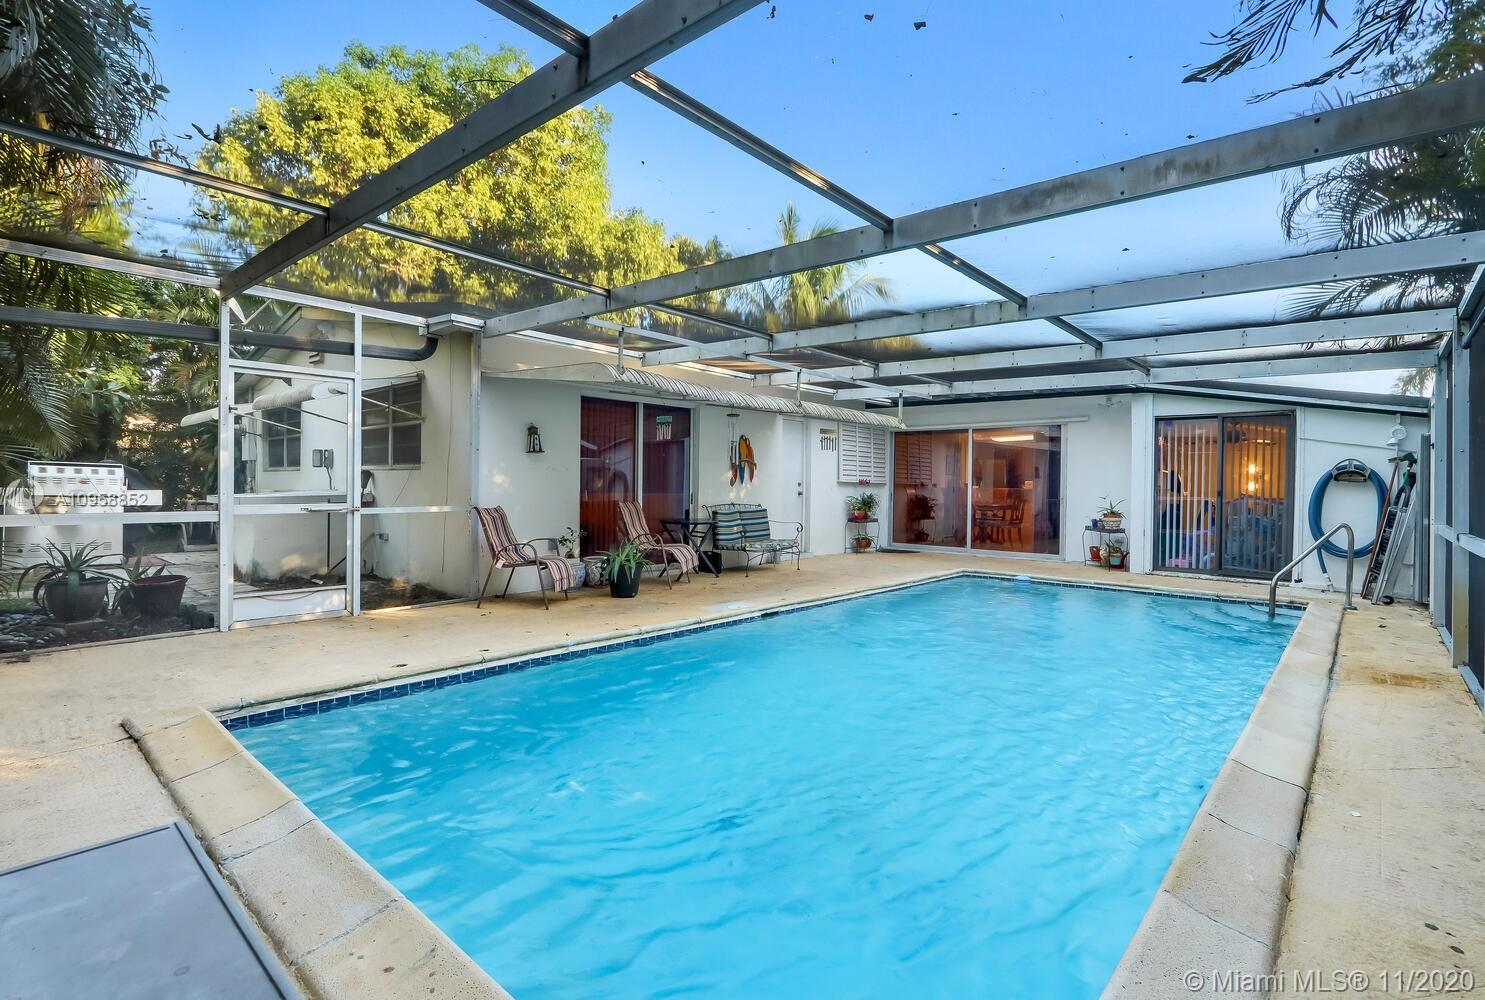 Traditional Florida Pool Home with a charming entryway porch in Hollywood. This 3BD/2BA home has a g